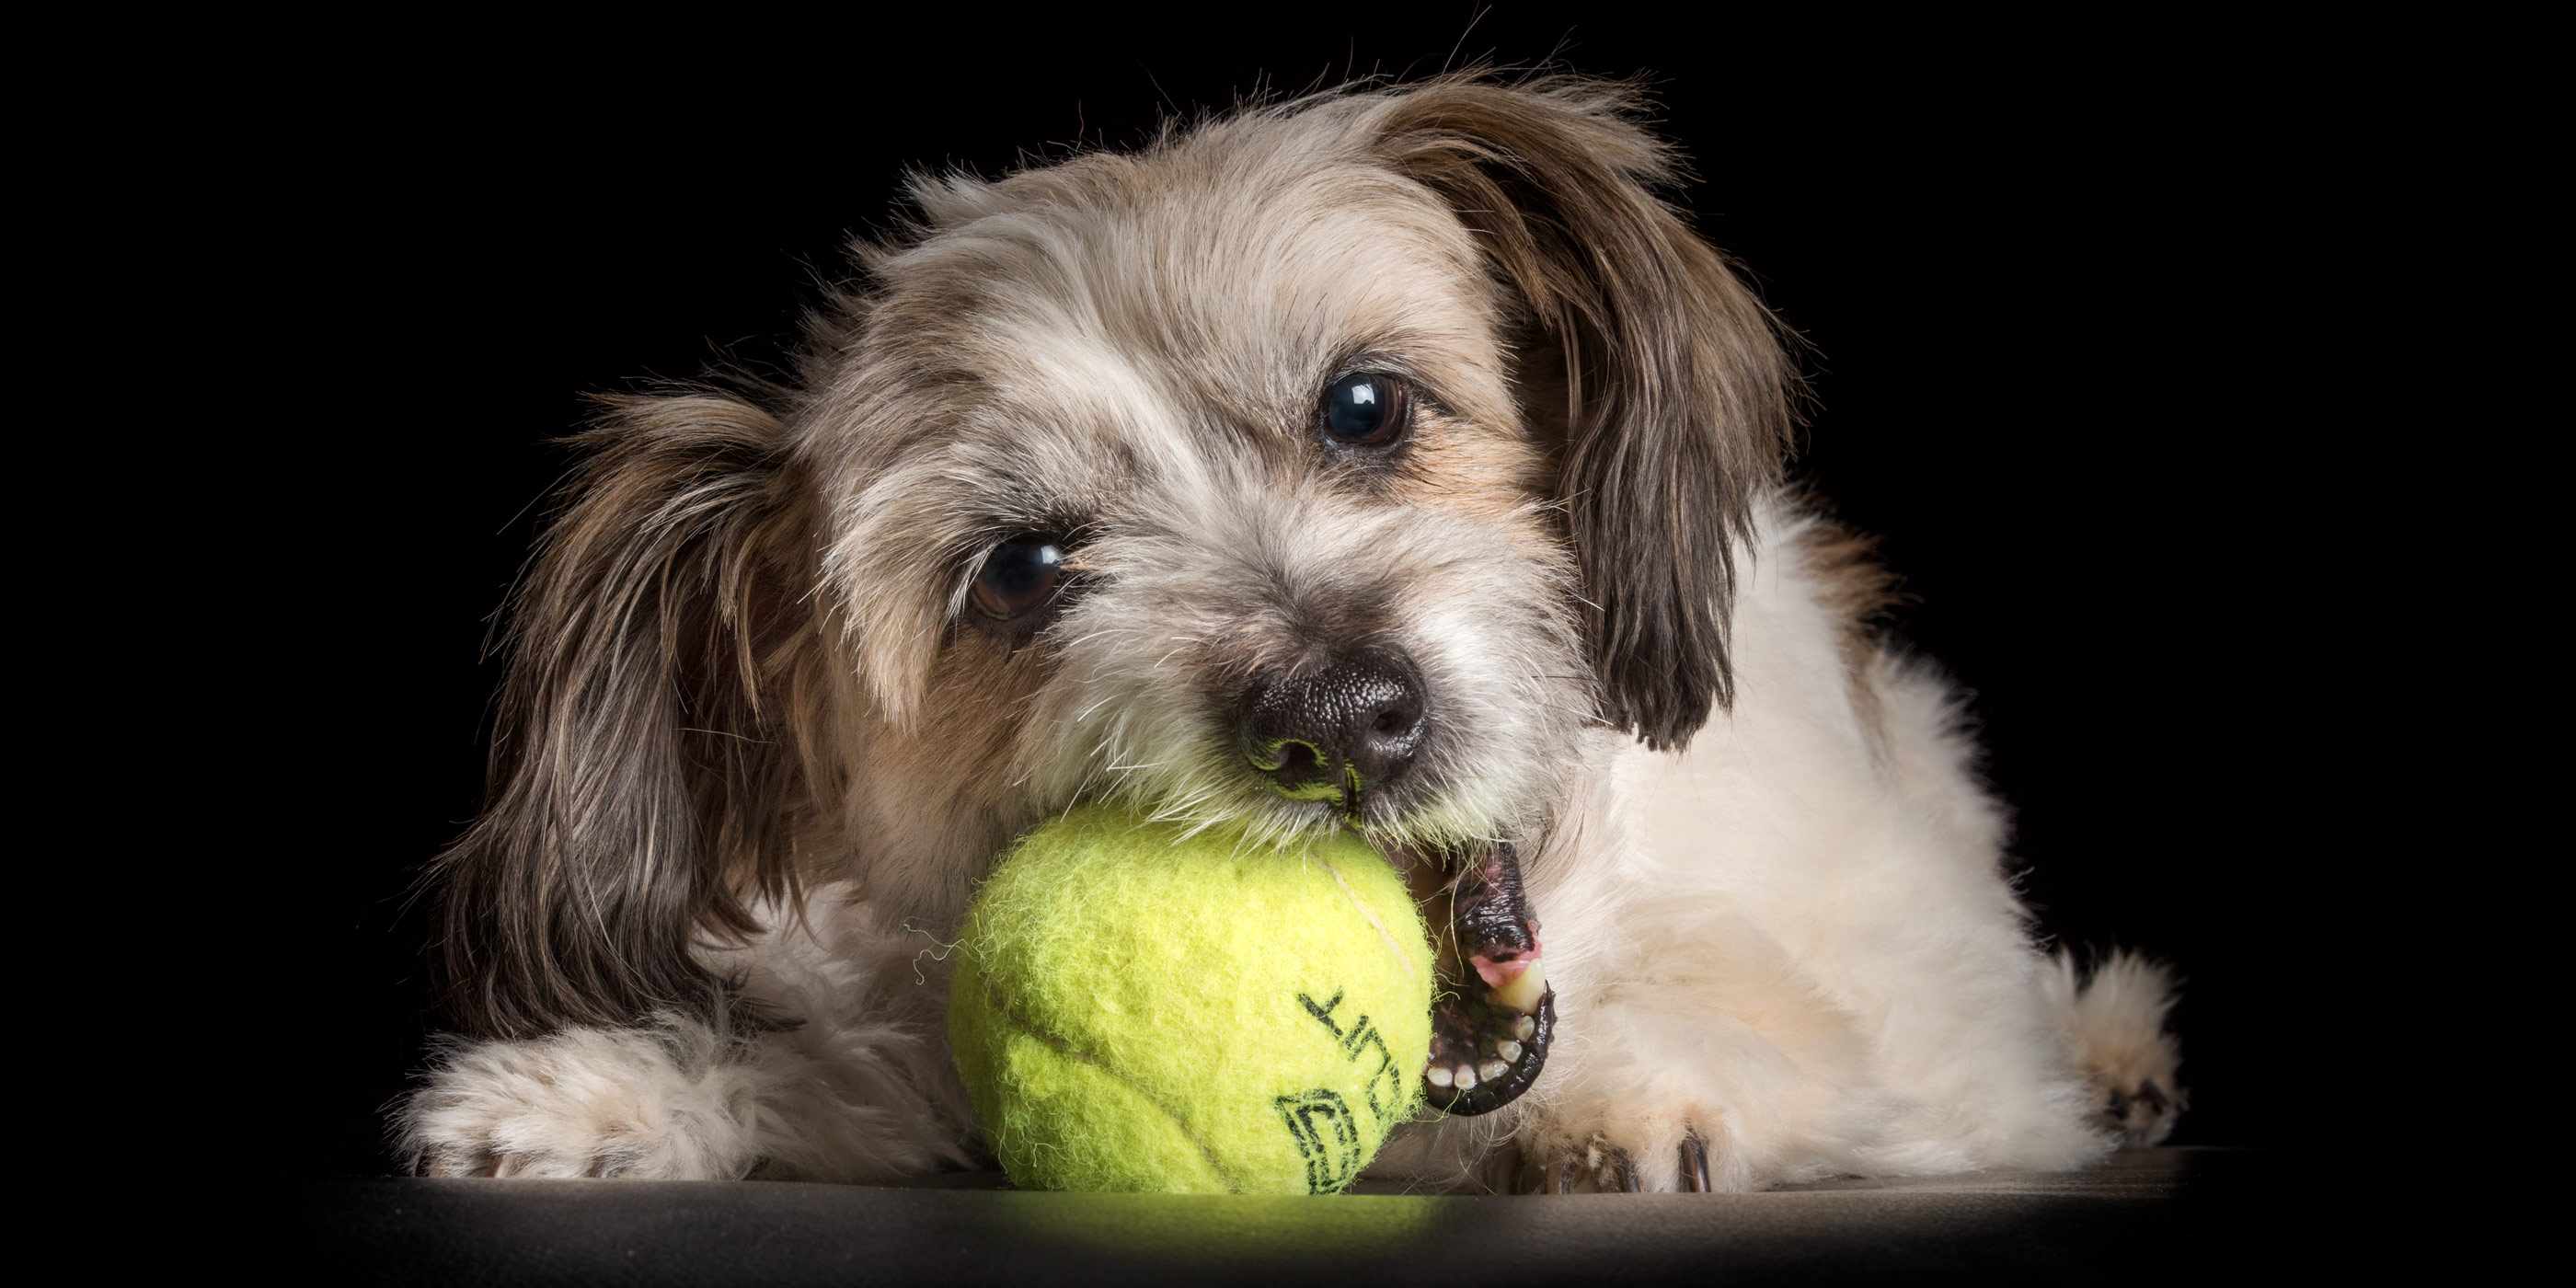 caramel and white maltese shih tzu chewing tennis ball